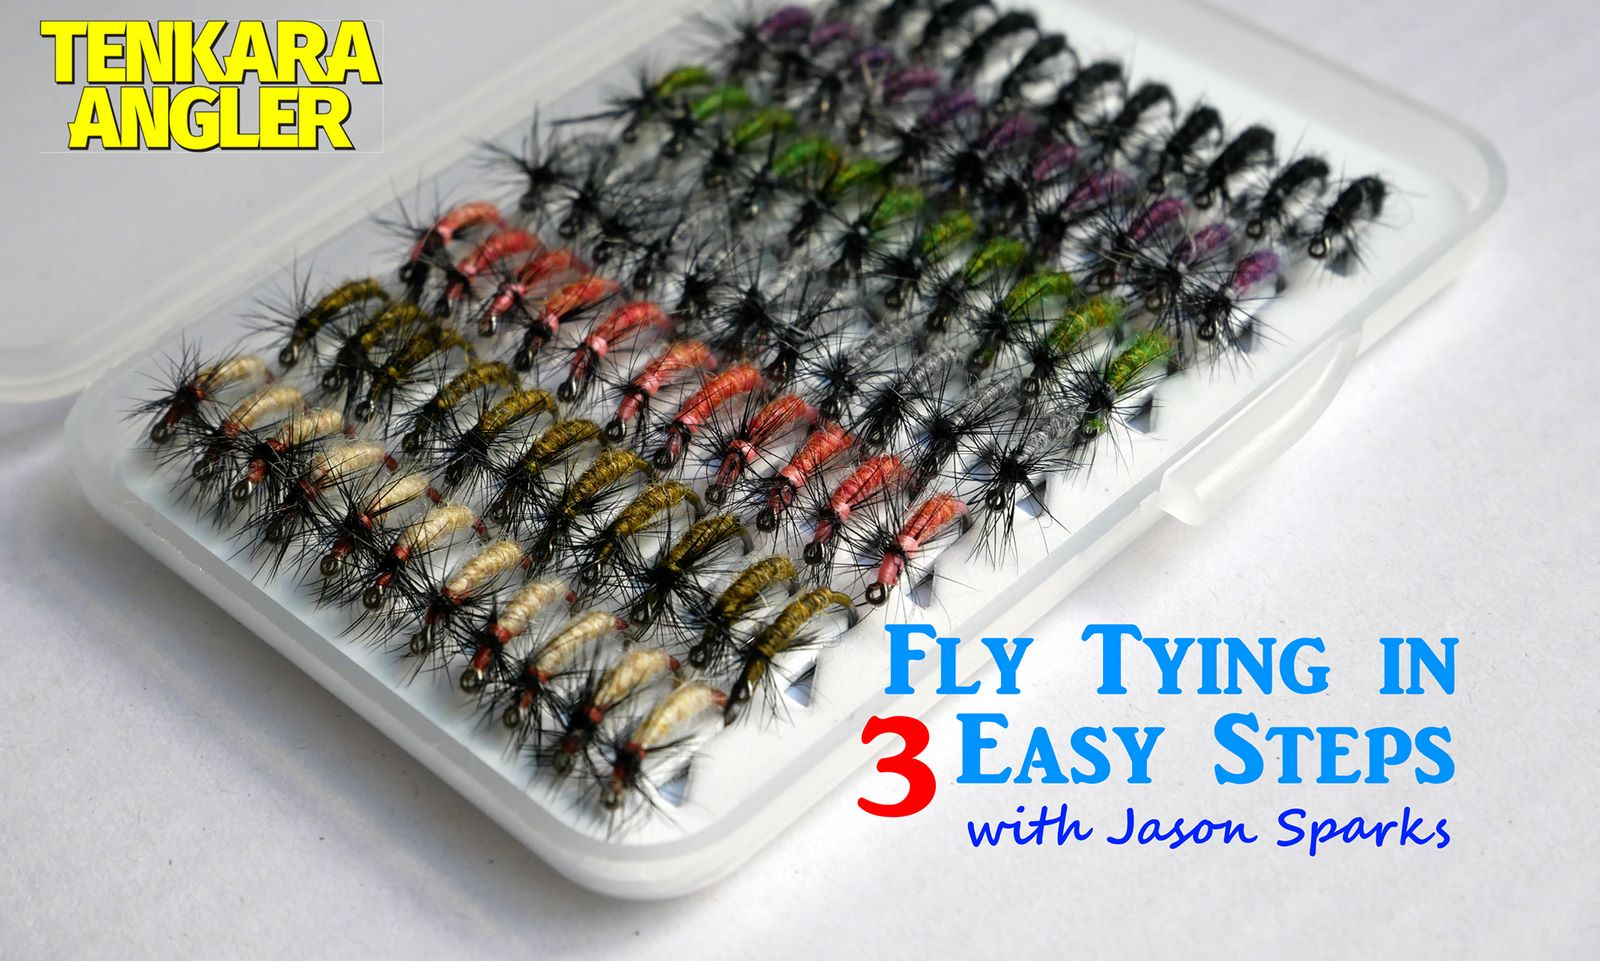 Jason Sparks - Fly Tying in 3 Easy Steps - Tenkara Angler